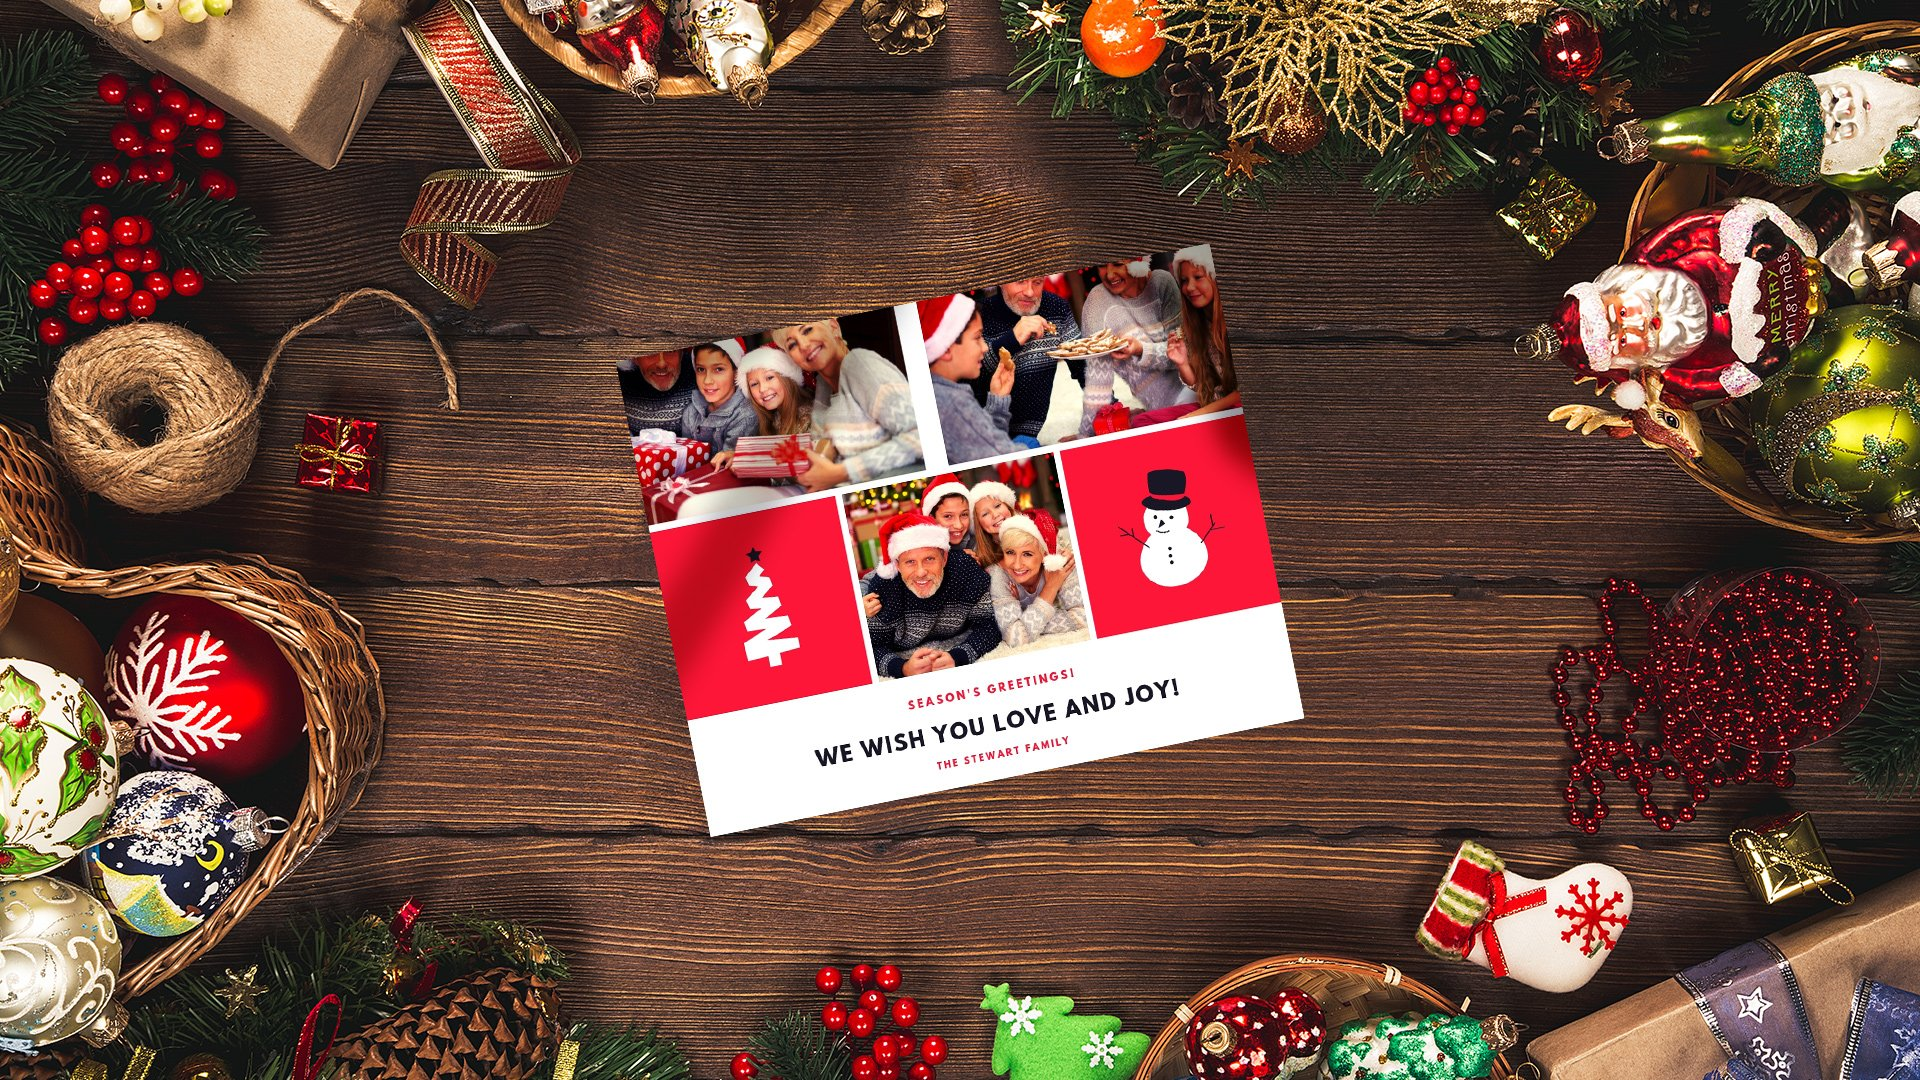 19 funny christmas and holiday season card ideas to try this year